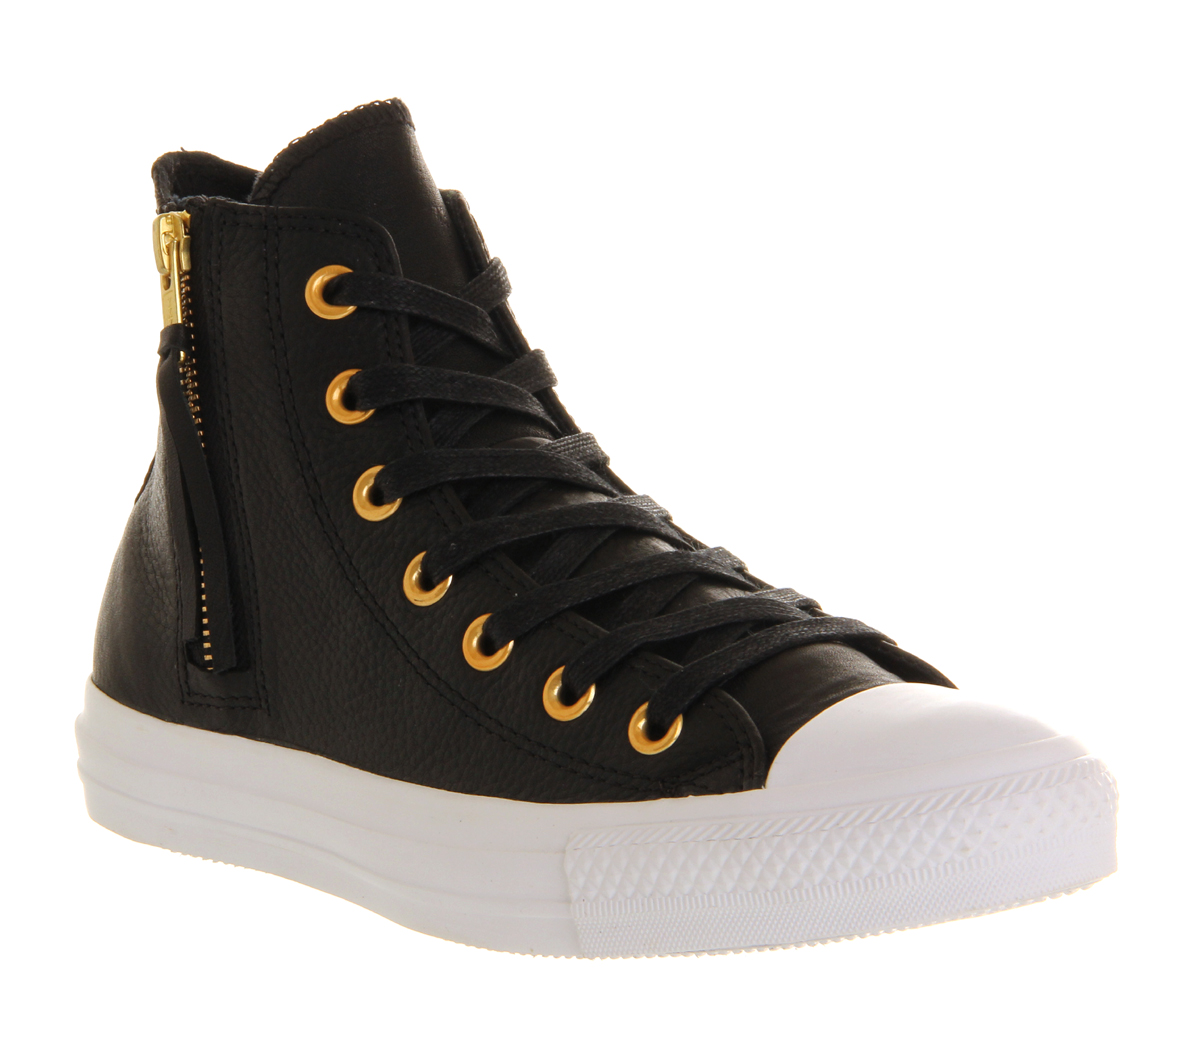 Converse-All-Star-Hi-Leather-Side-Zip-BLACK-GOLD-Trainers-Shoes